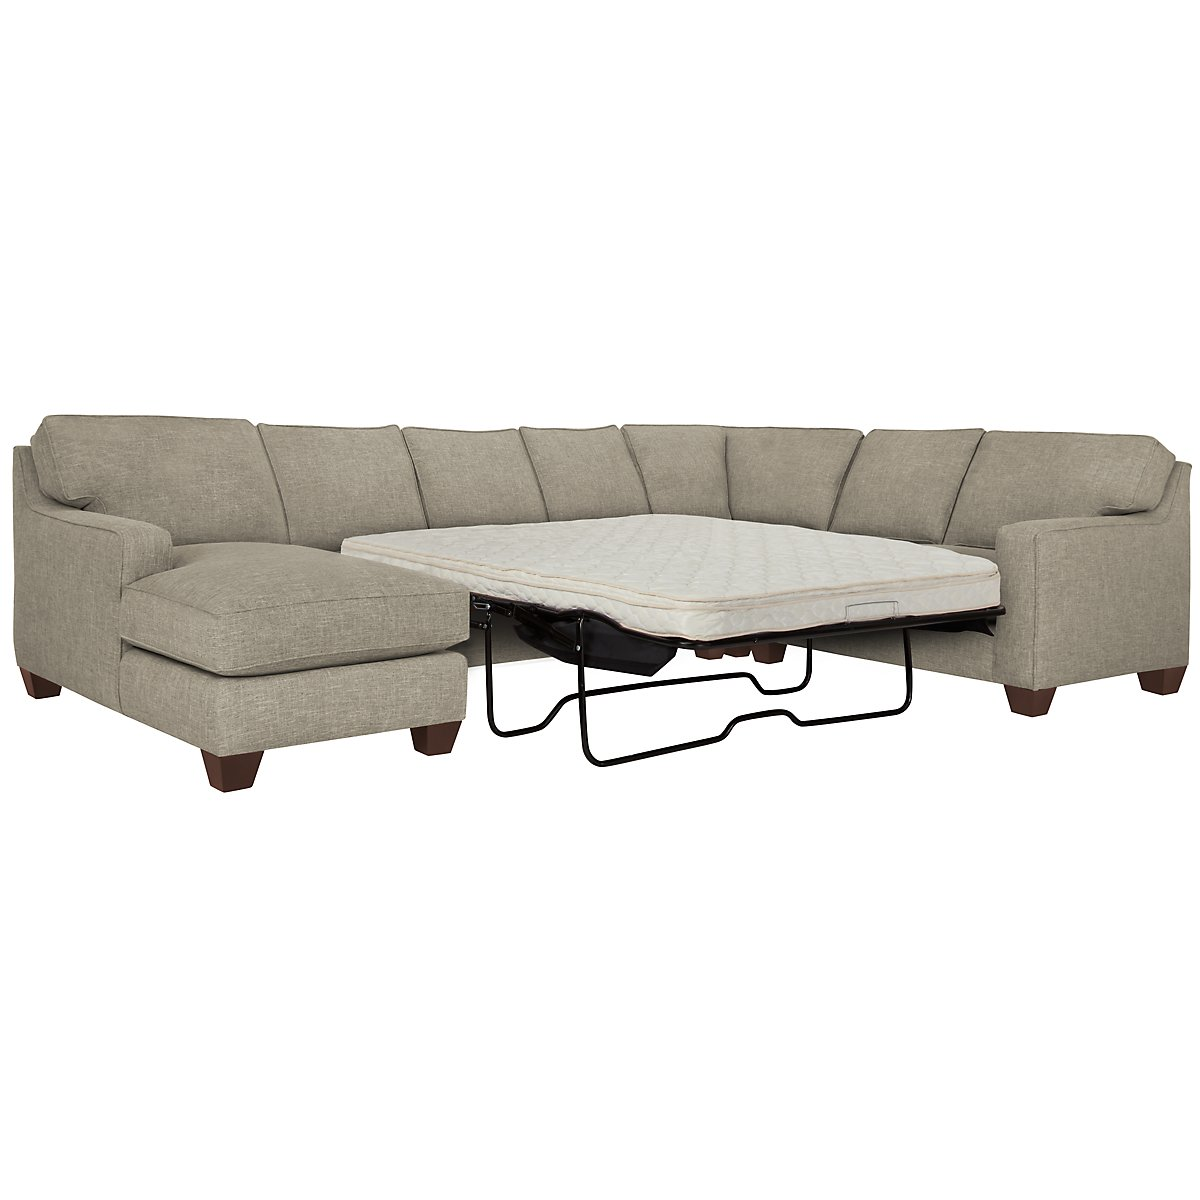 York Pewter Fabric Left Chaise Innerspring Sleeper Sectional